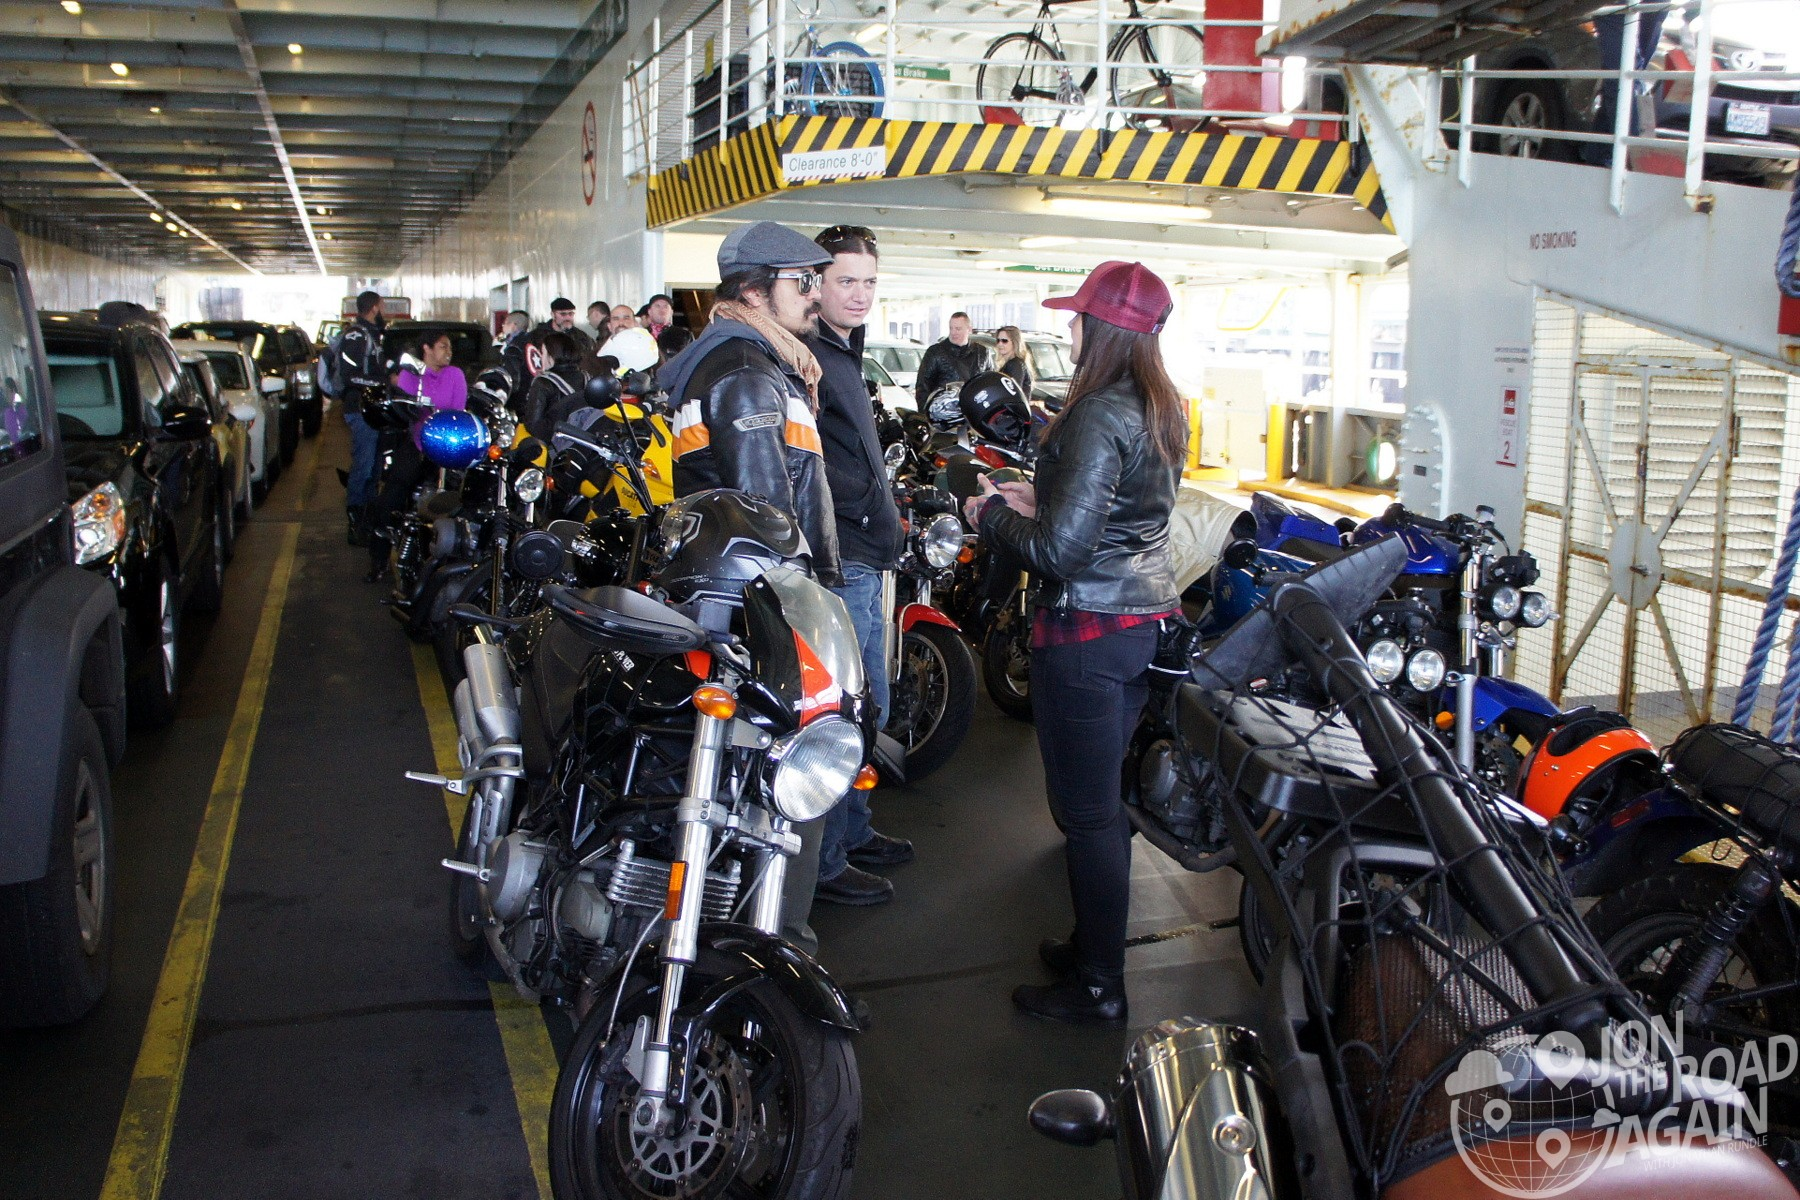 Motorcycles on the Ferry